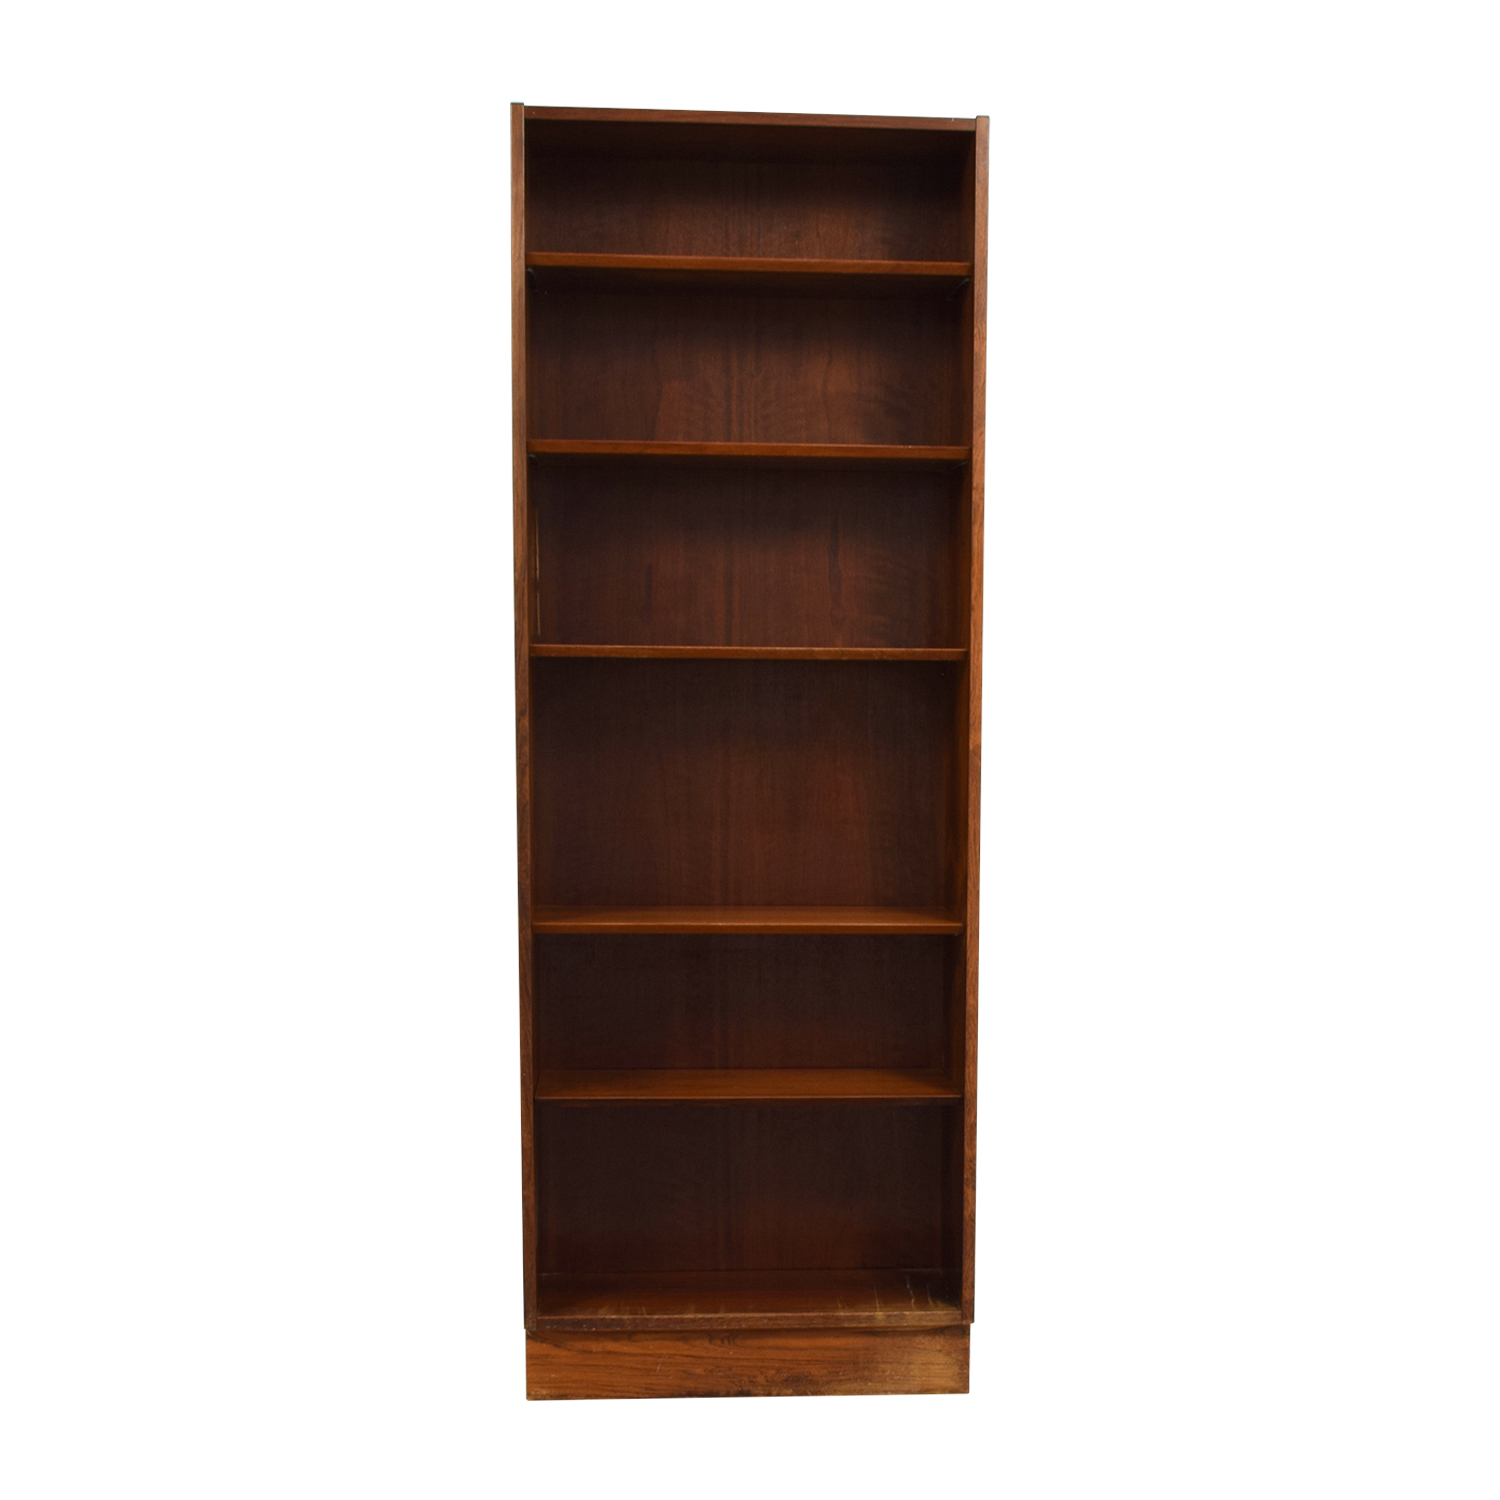 buy Danish Furniture Rosewood Bookcase Danish Furniture Bookcases & Shelving